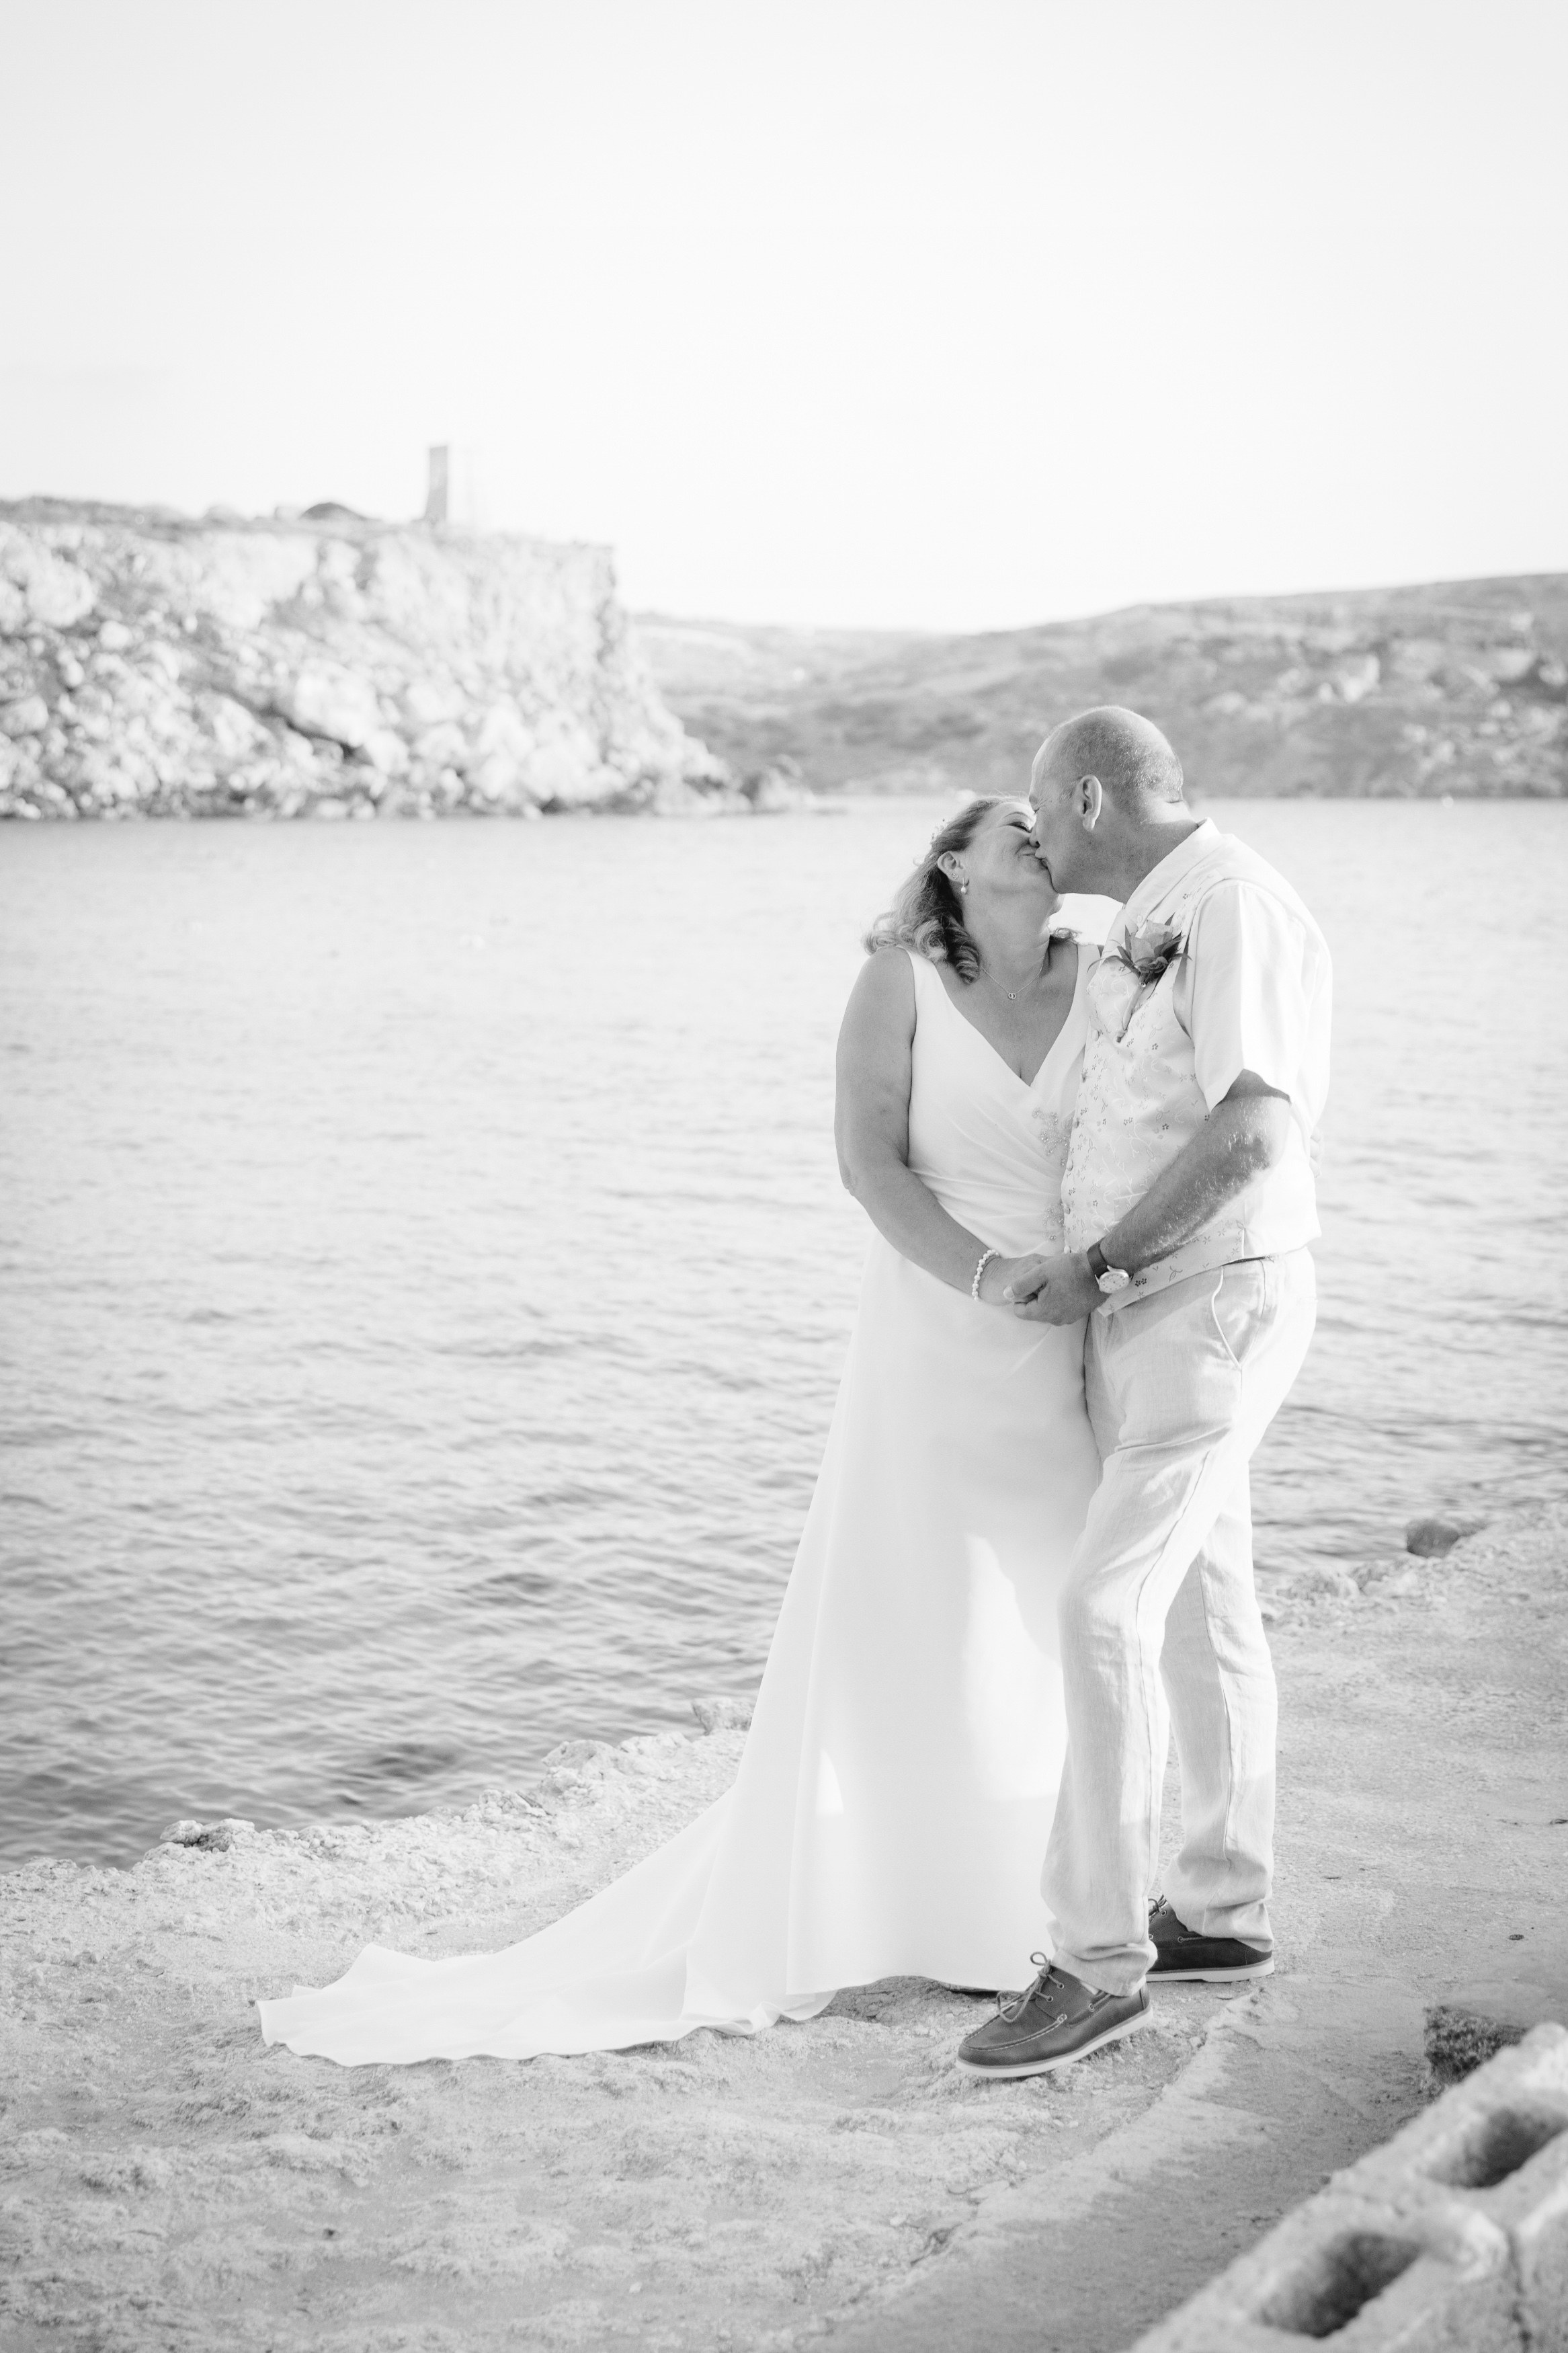 Beach wedding in Malta